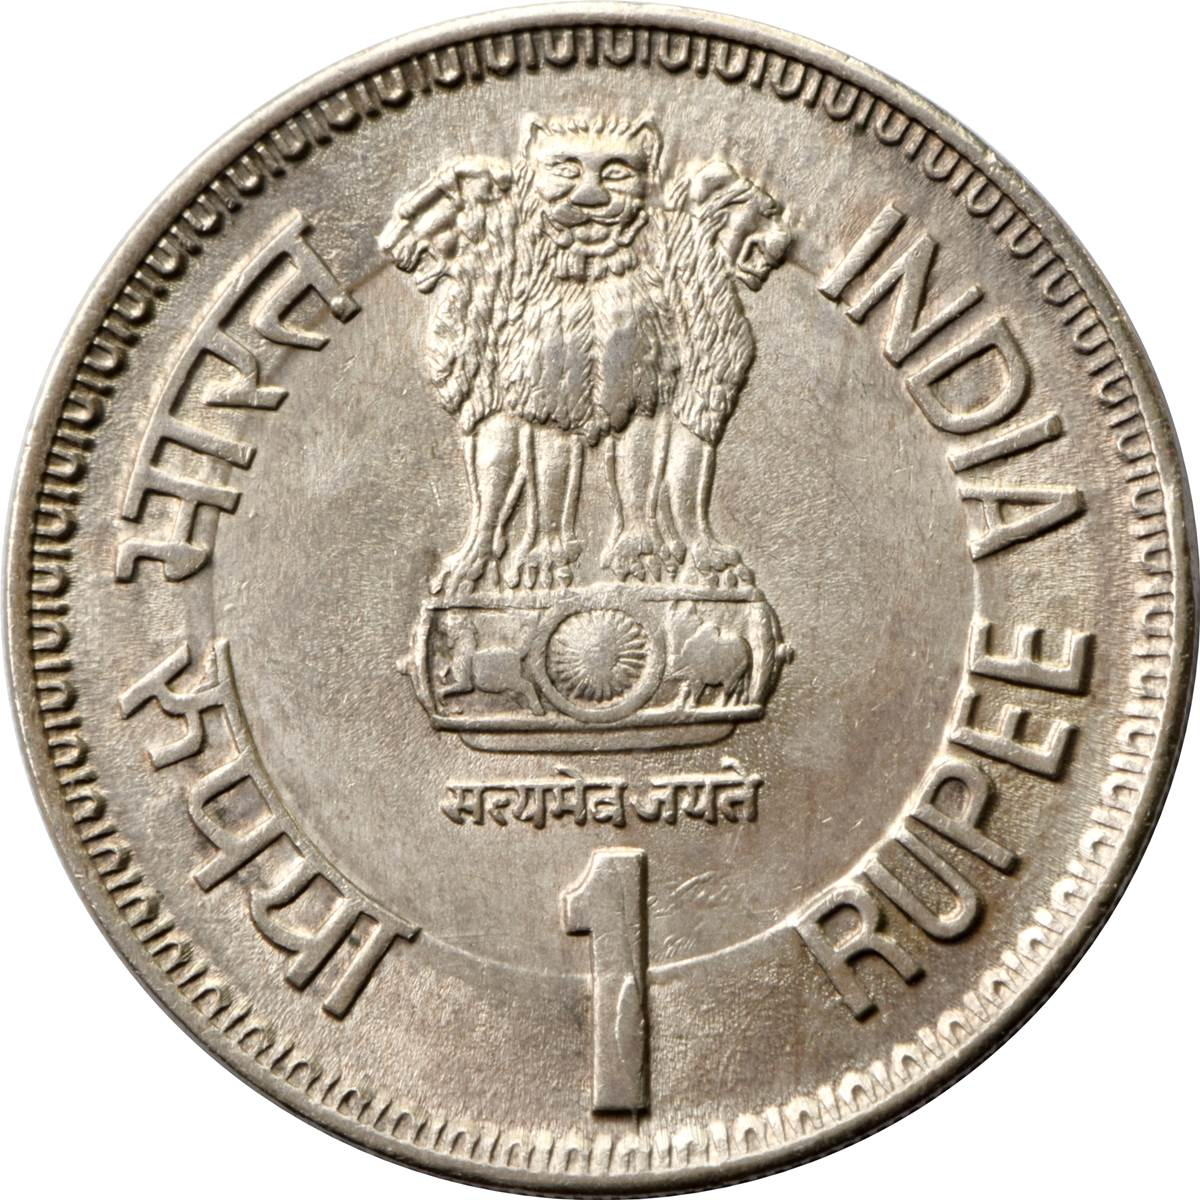 INDIA UNCIRCULATED 1991 PARLIMENTARY CONFERENCE COMMEMORATIVE 1 RUPEE KM #90